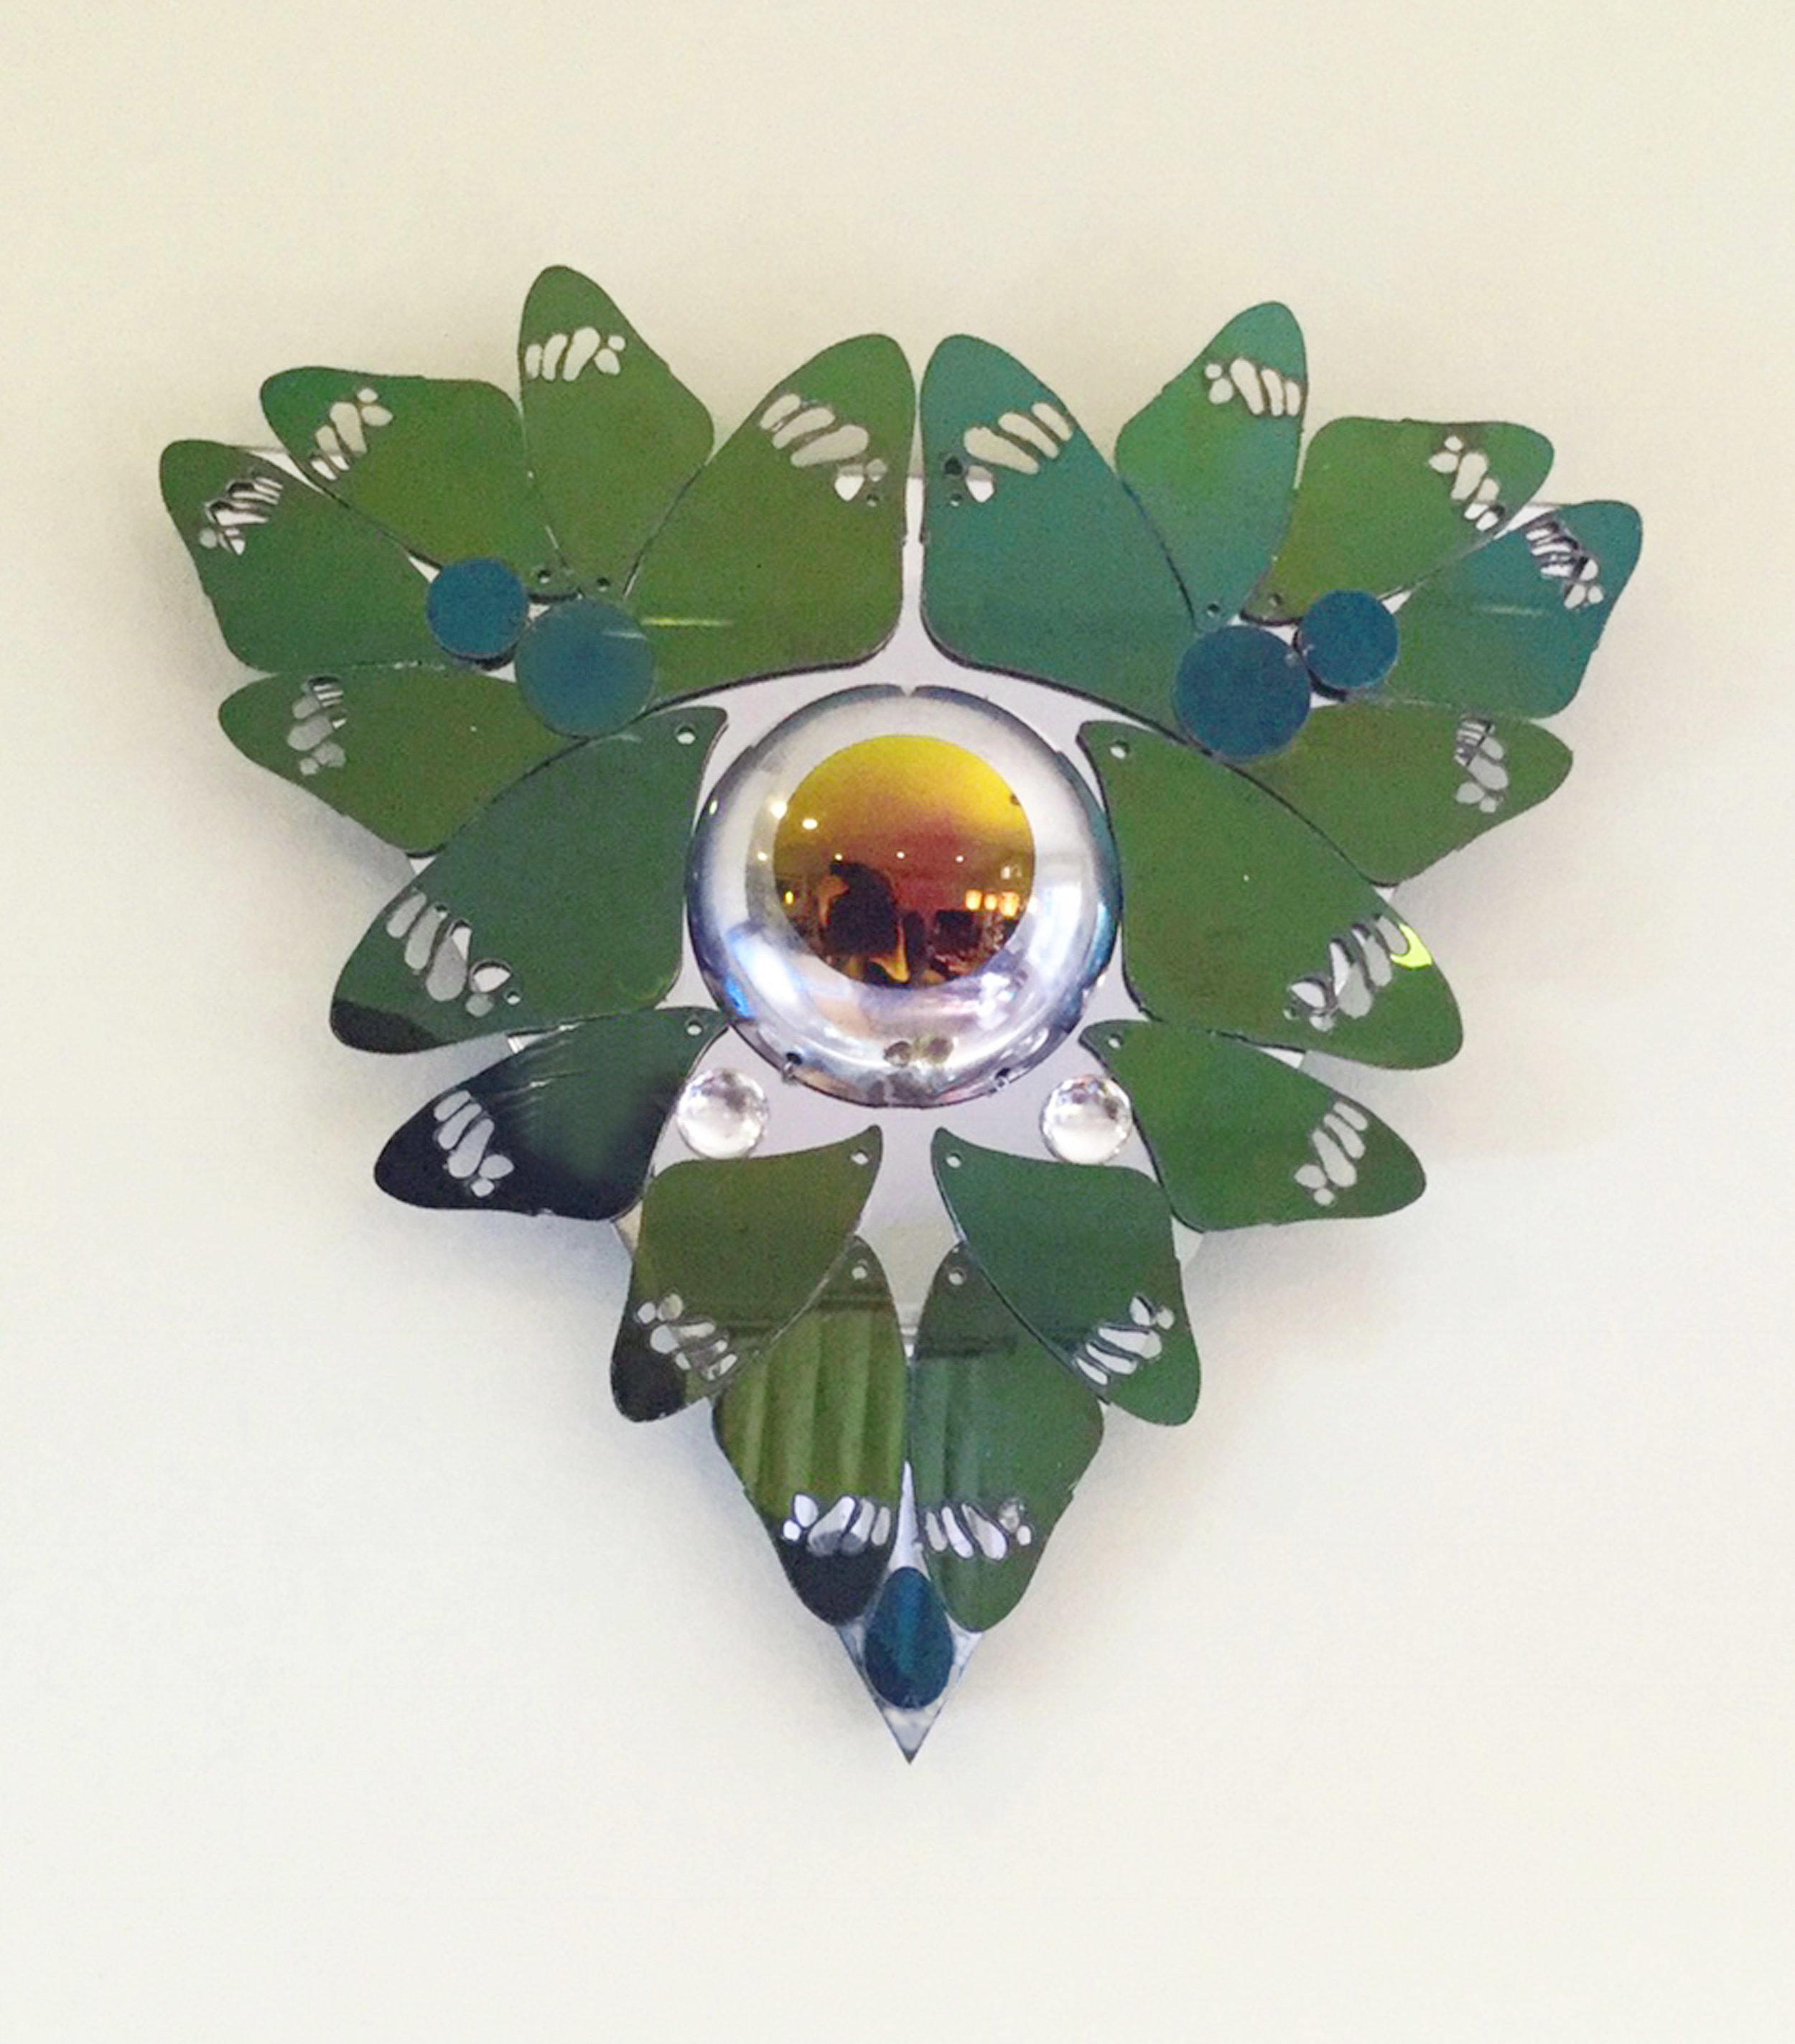 """Kaleido :Third Wing  Acrylic, stainless steel. 12"""" x 12"""" x 13""""   Limited number available, made upon request. Contact for price"""